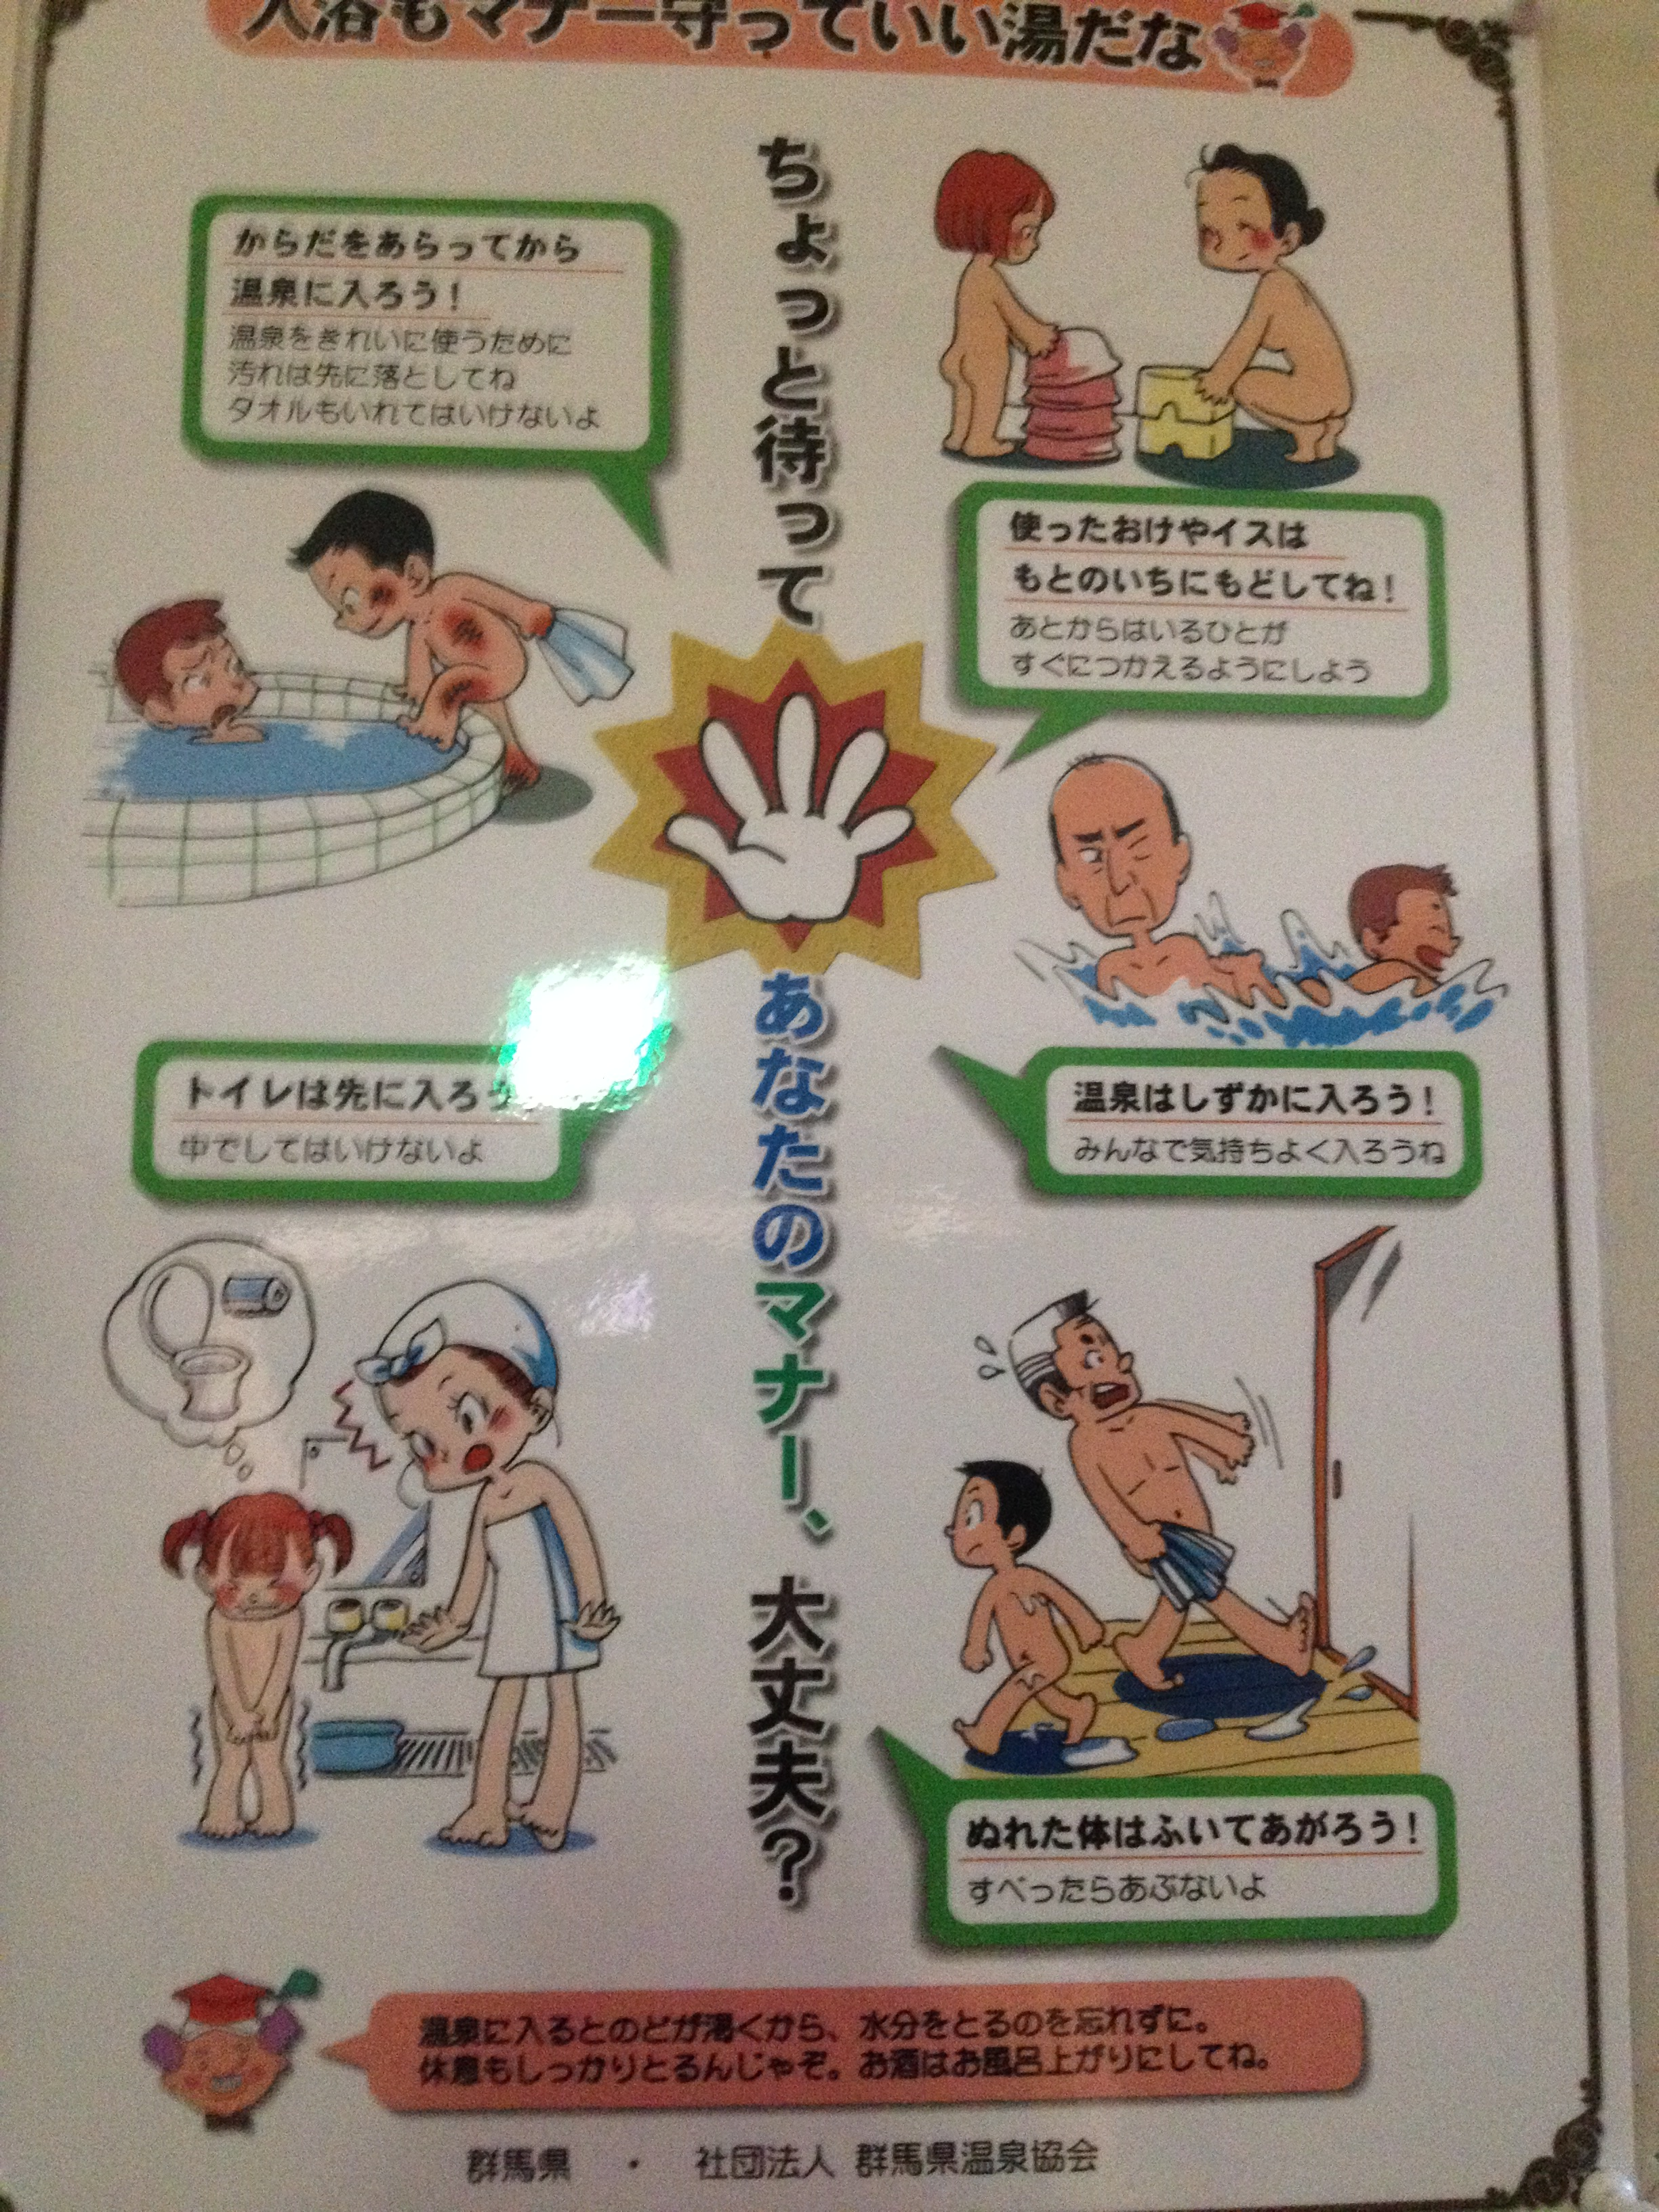 sign at Japanese Onsen